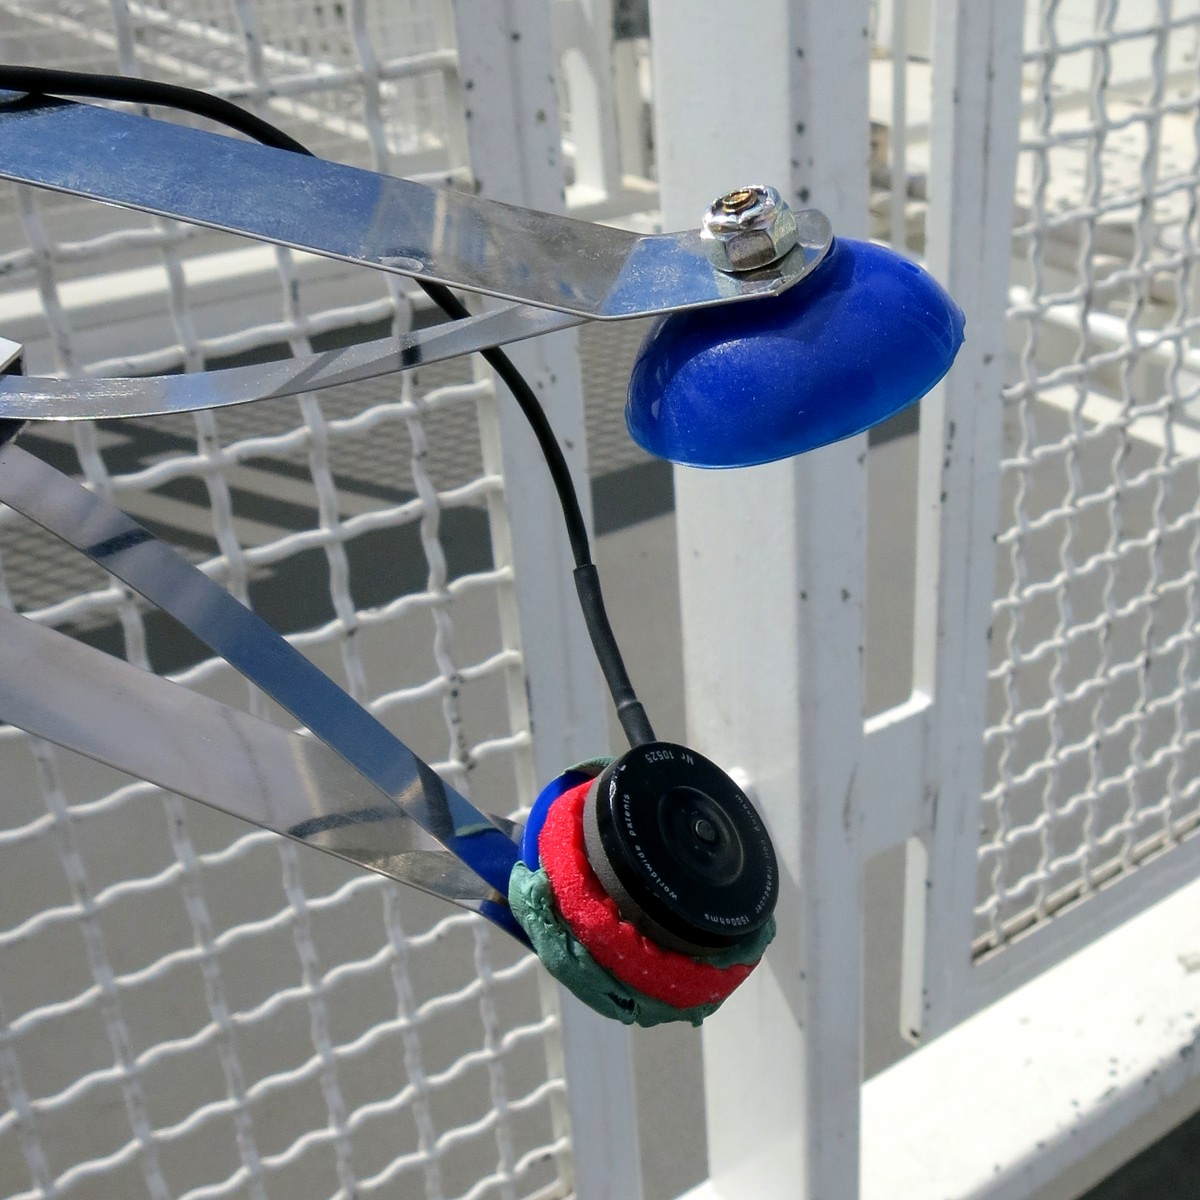 The extended reach mechanism shows signs of its adjustment after the walk.